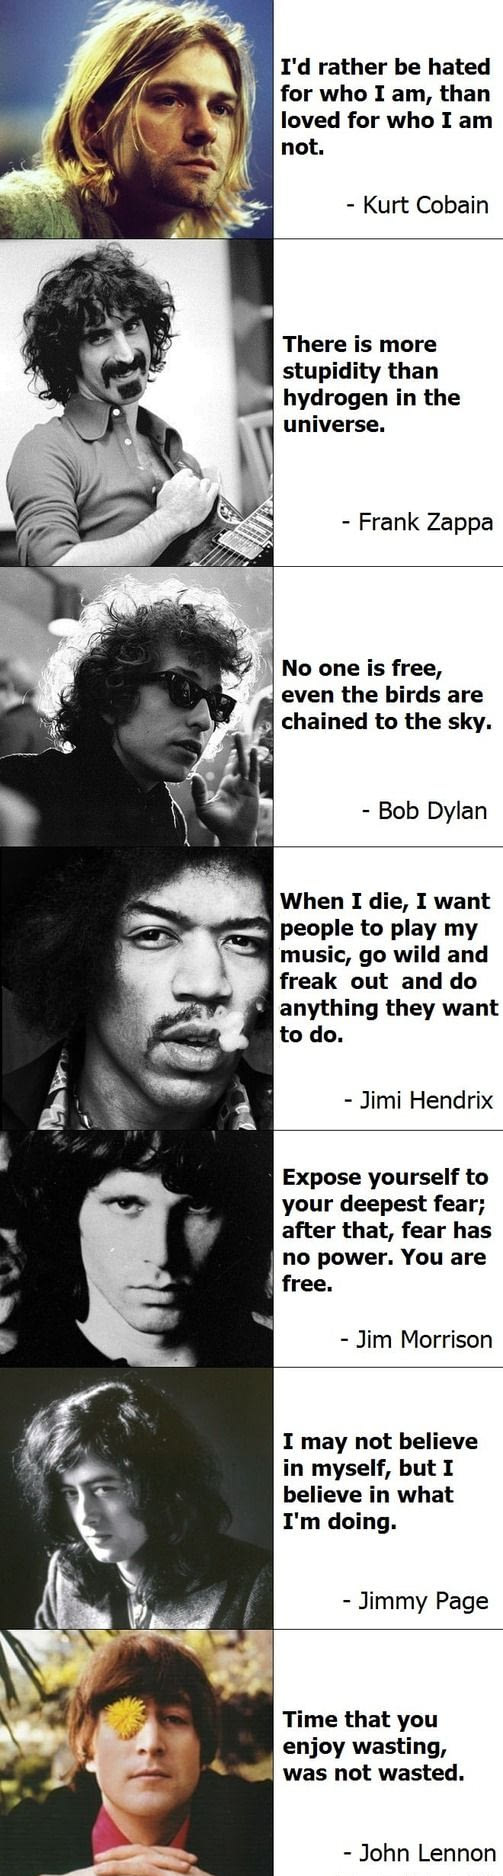 some famous quotes from famous people, kurt cobain, frank zappa, bob dylan, jim morrisson, jimmy page, john lennon